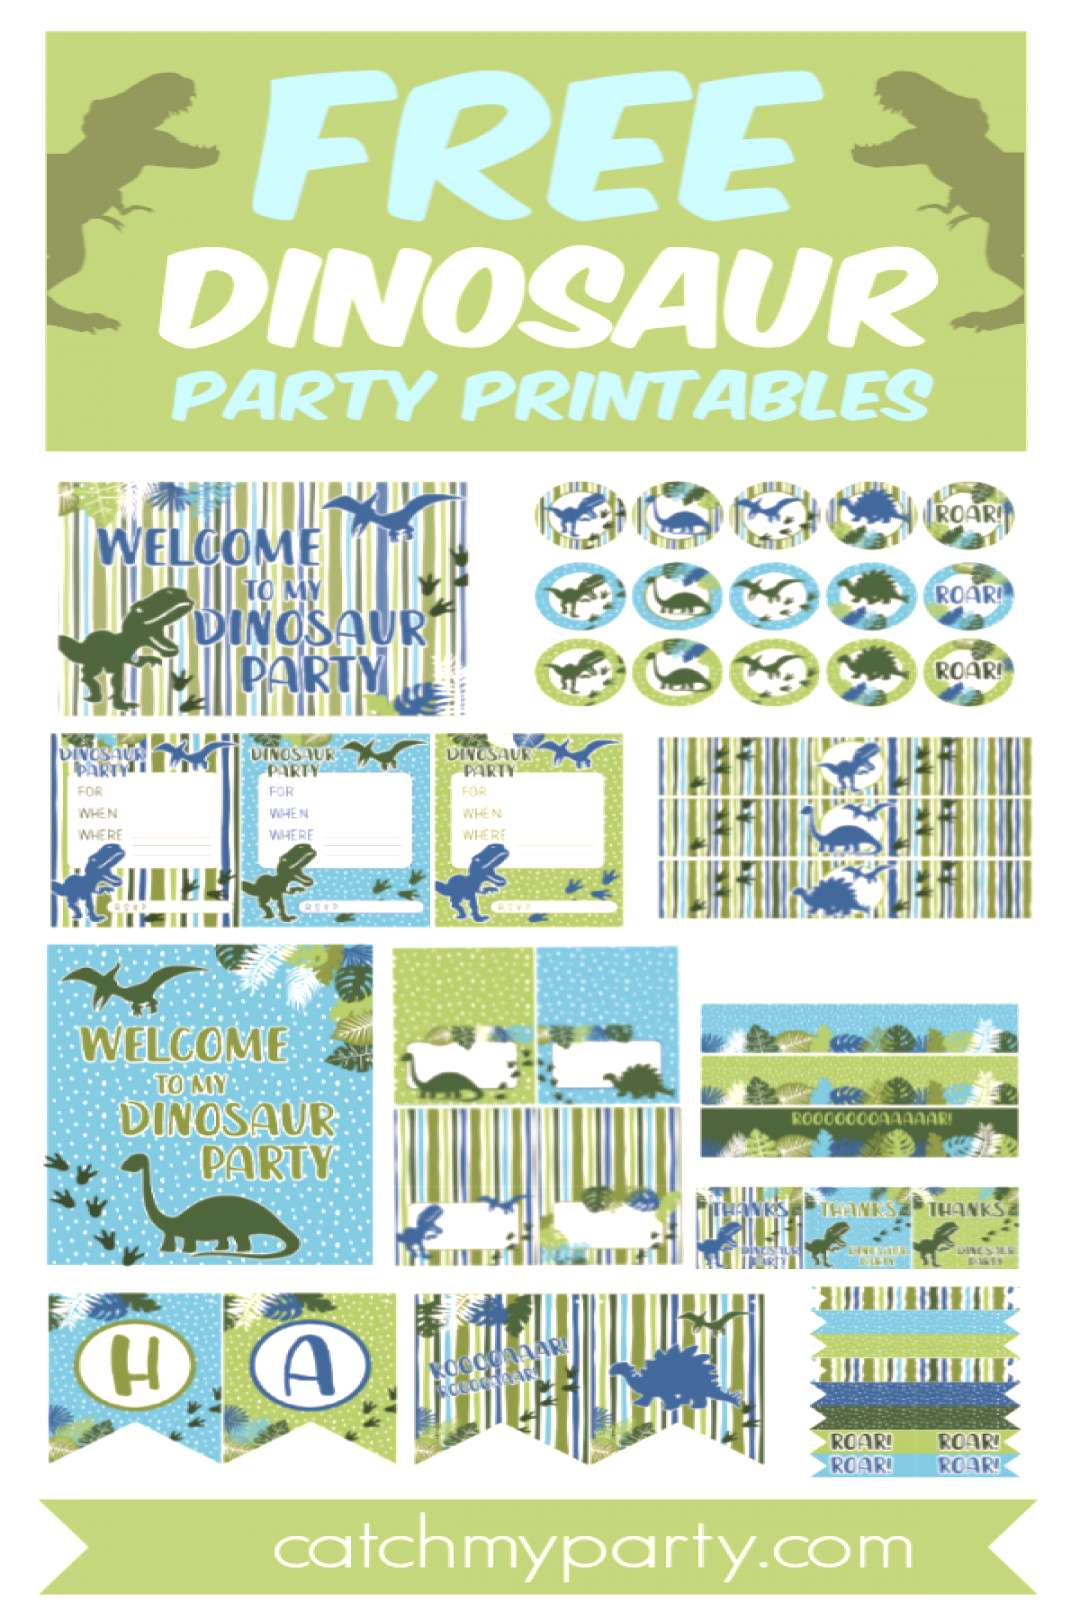 Im so excited to share this cute set of FREE Dinosaur Birthday Party Printables with you this we